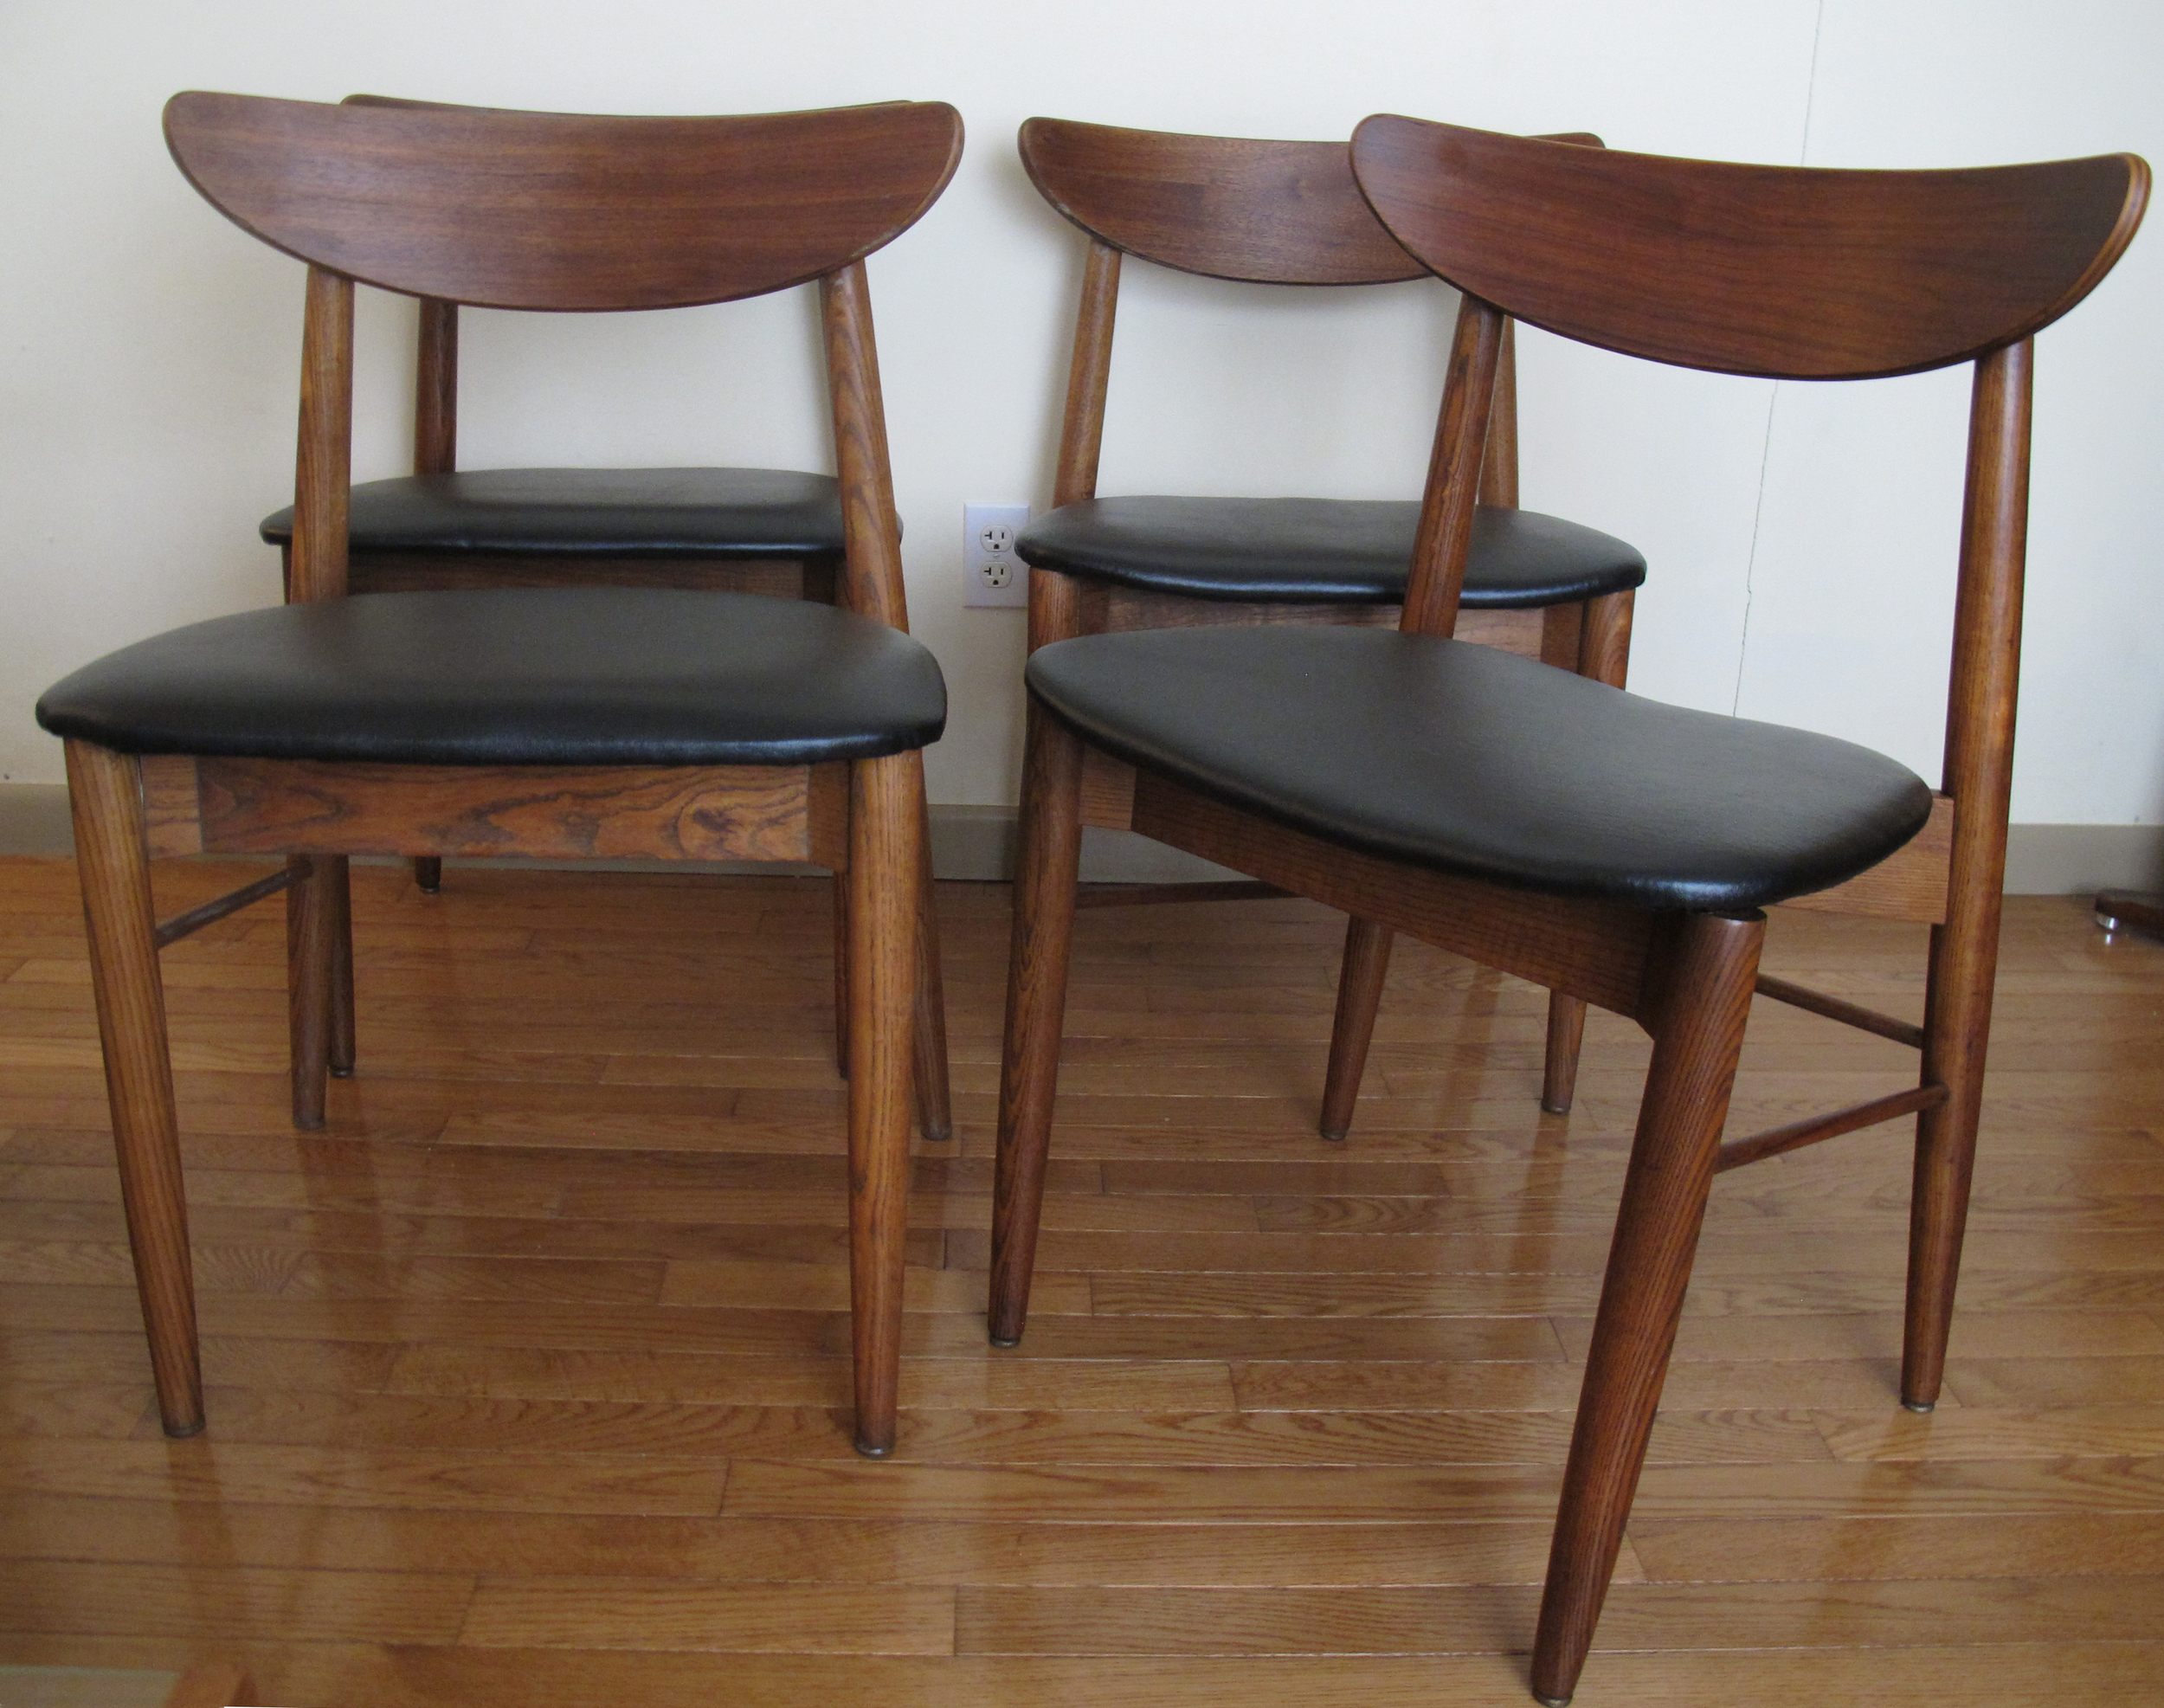 SET OF DANISH STYLE DINING CHAIRS AFTER HANS WEGNER